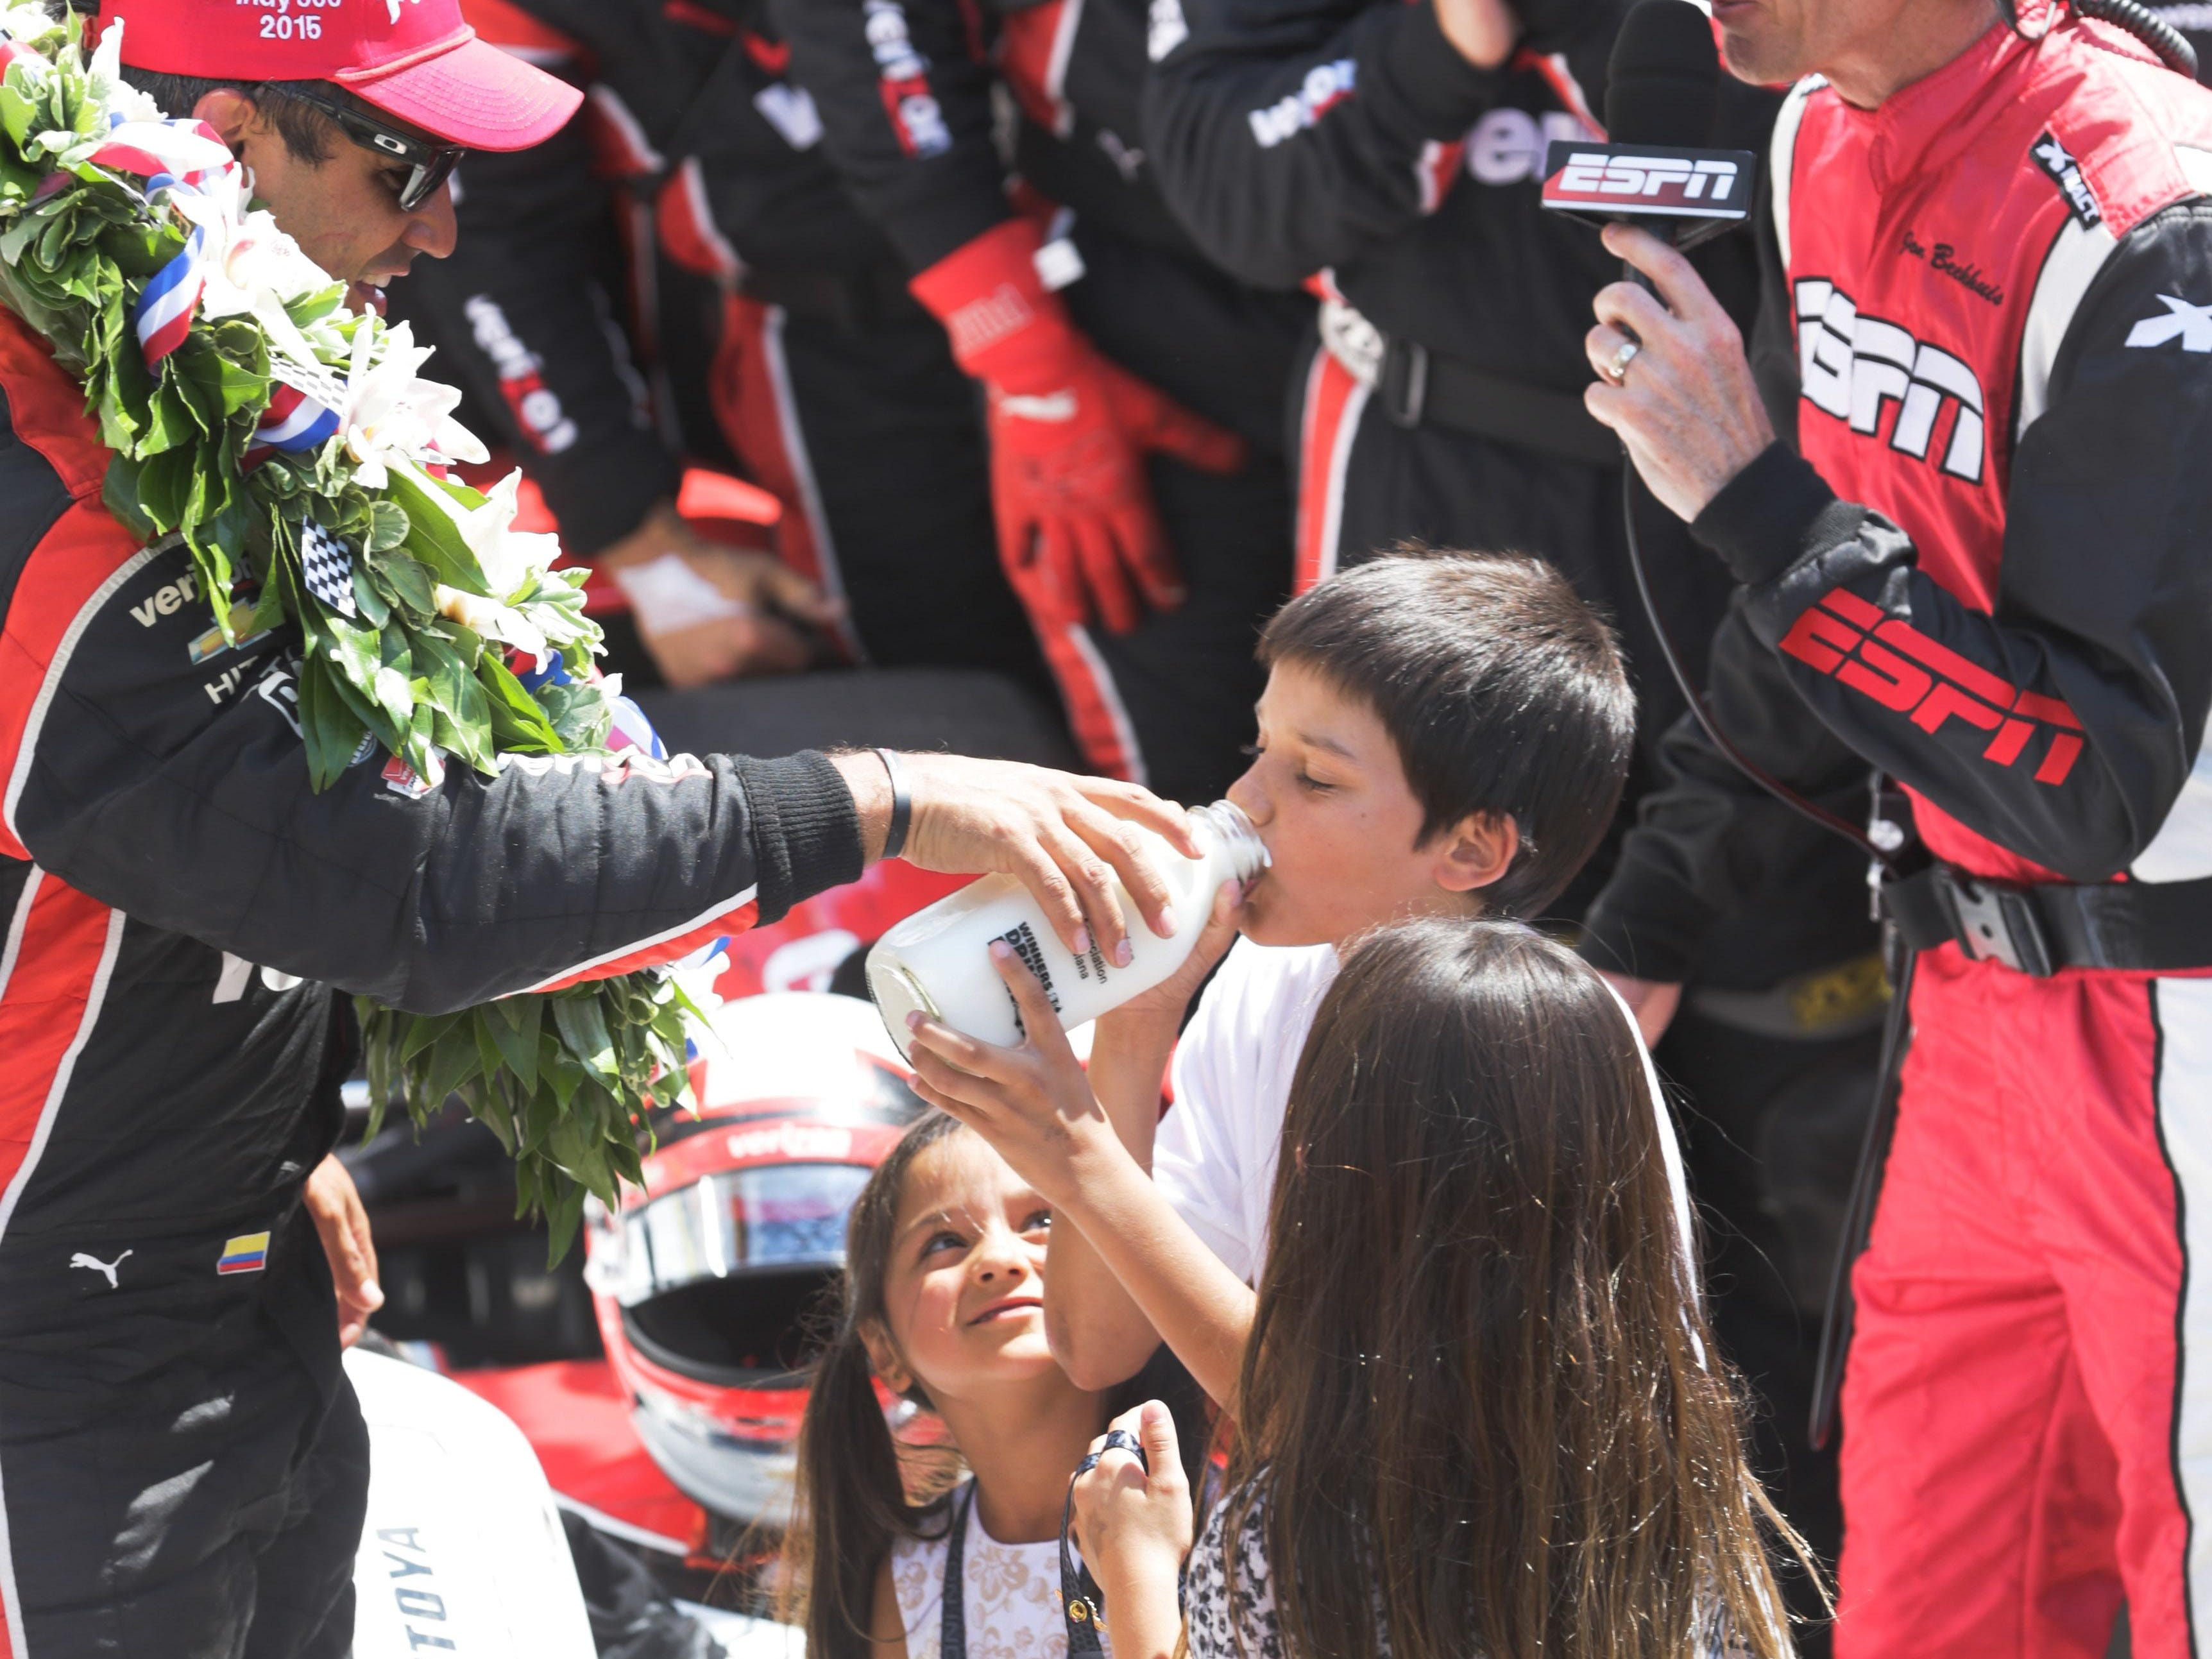 Juan Montoya in Victory Circle gives son Sebastian a drink of the milk after winning the 99th running of the Indianapolis 500 as daughters Manuela and Paulina look on. May 24, 2015